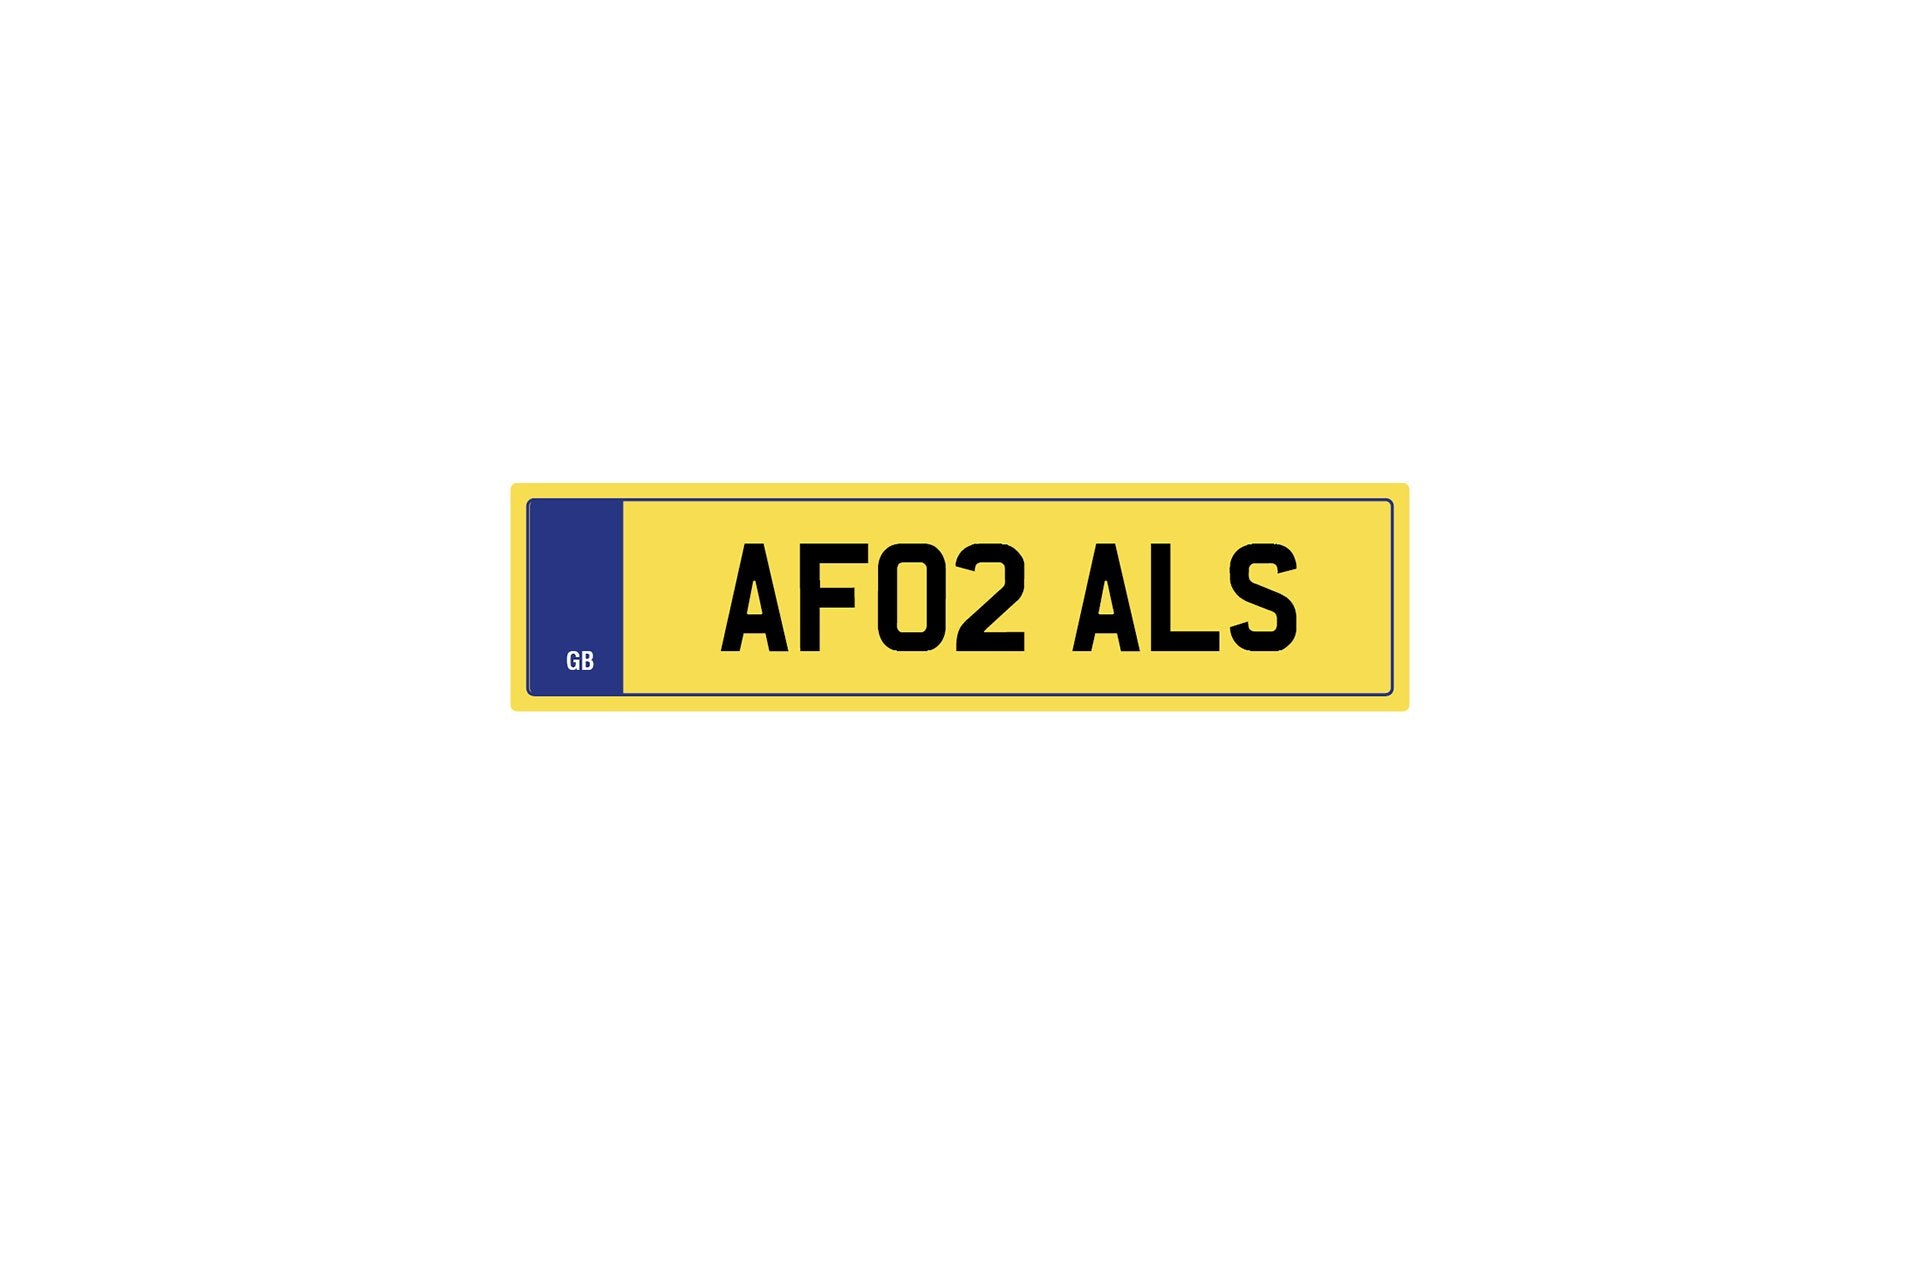 Private Plate Af02 Als by Kahn - Image 207